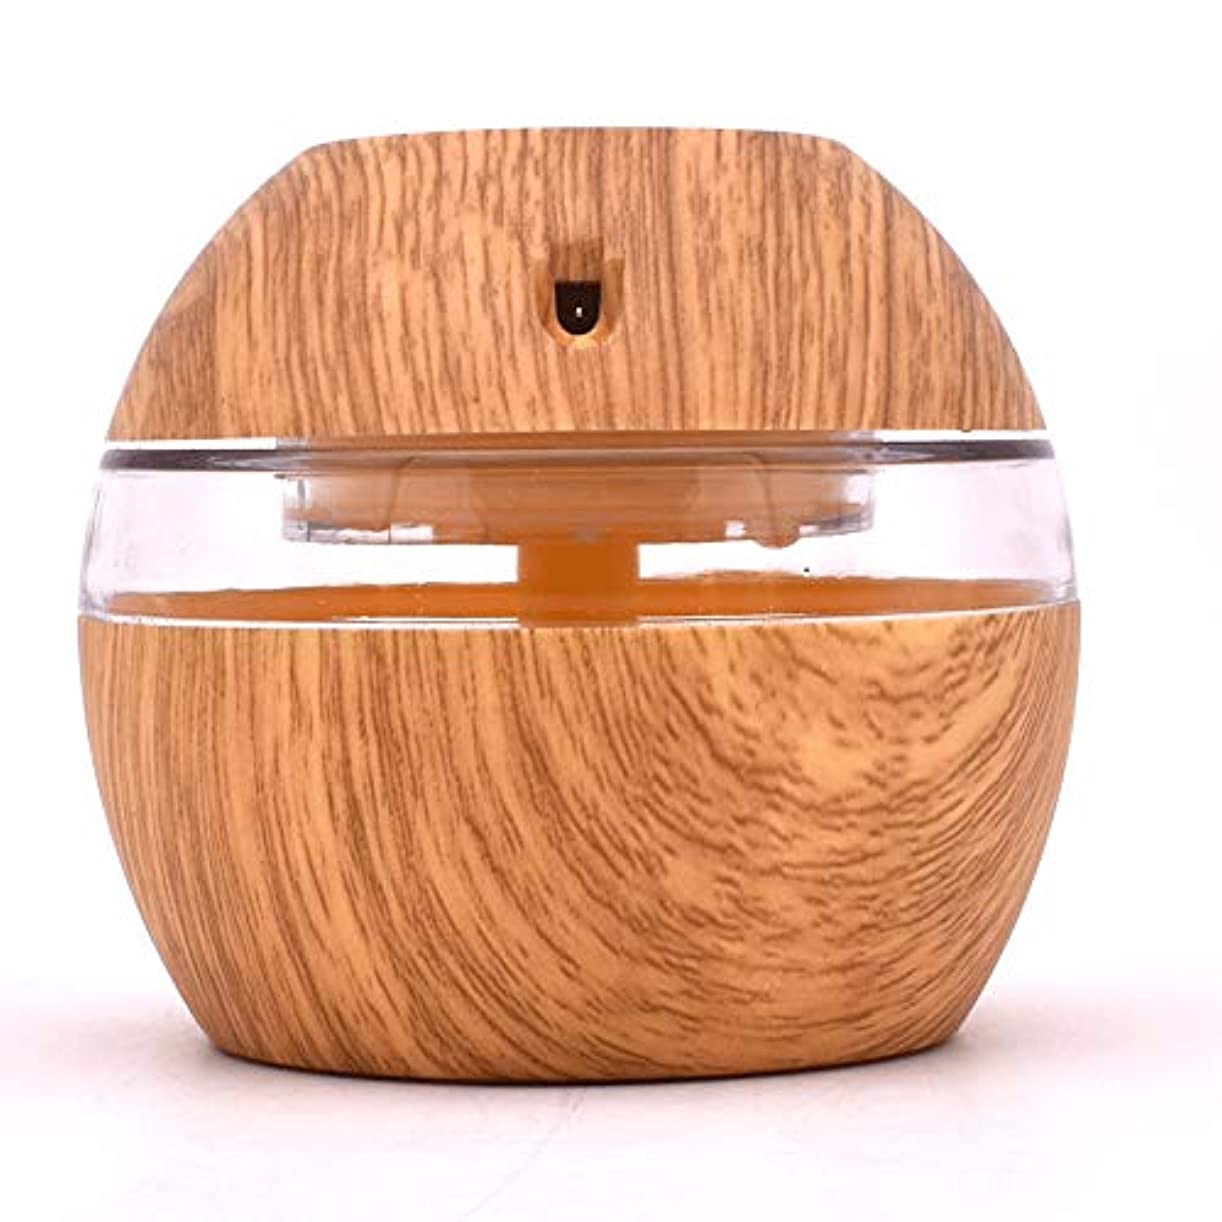 心のこもった辞任する慈善300ML Aroma Diffuser Essential Oil Diffuser With 7 Color LED Lights Waterless Auto Off